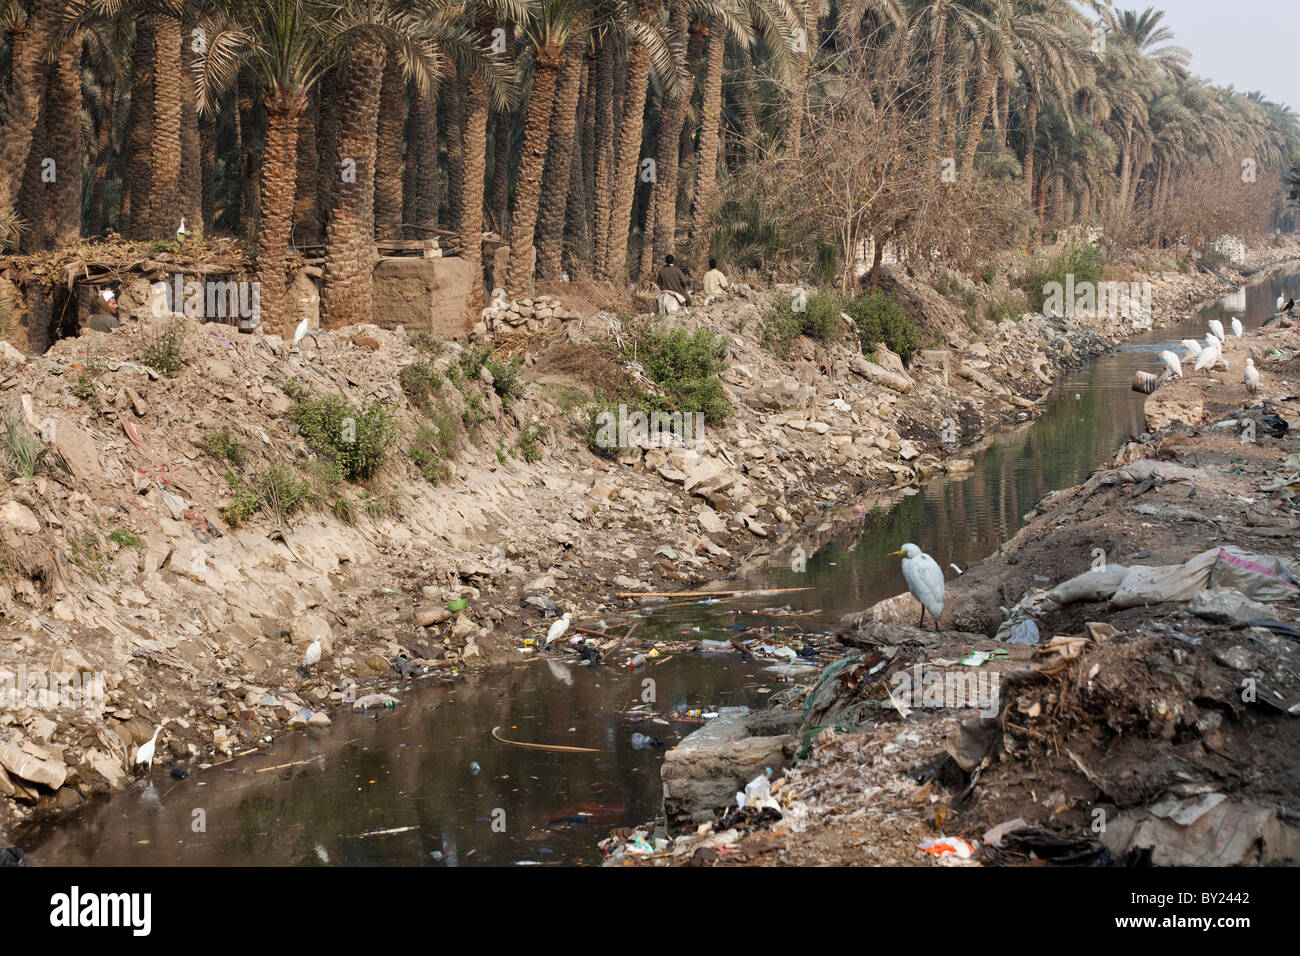 polluted canal in village near Bani Soueif, Egypt - Stock Image